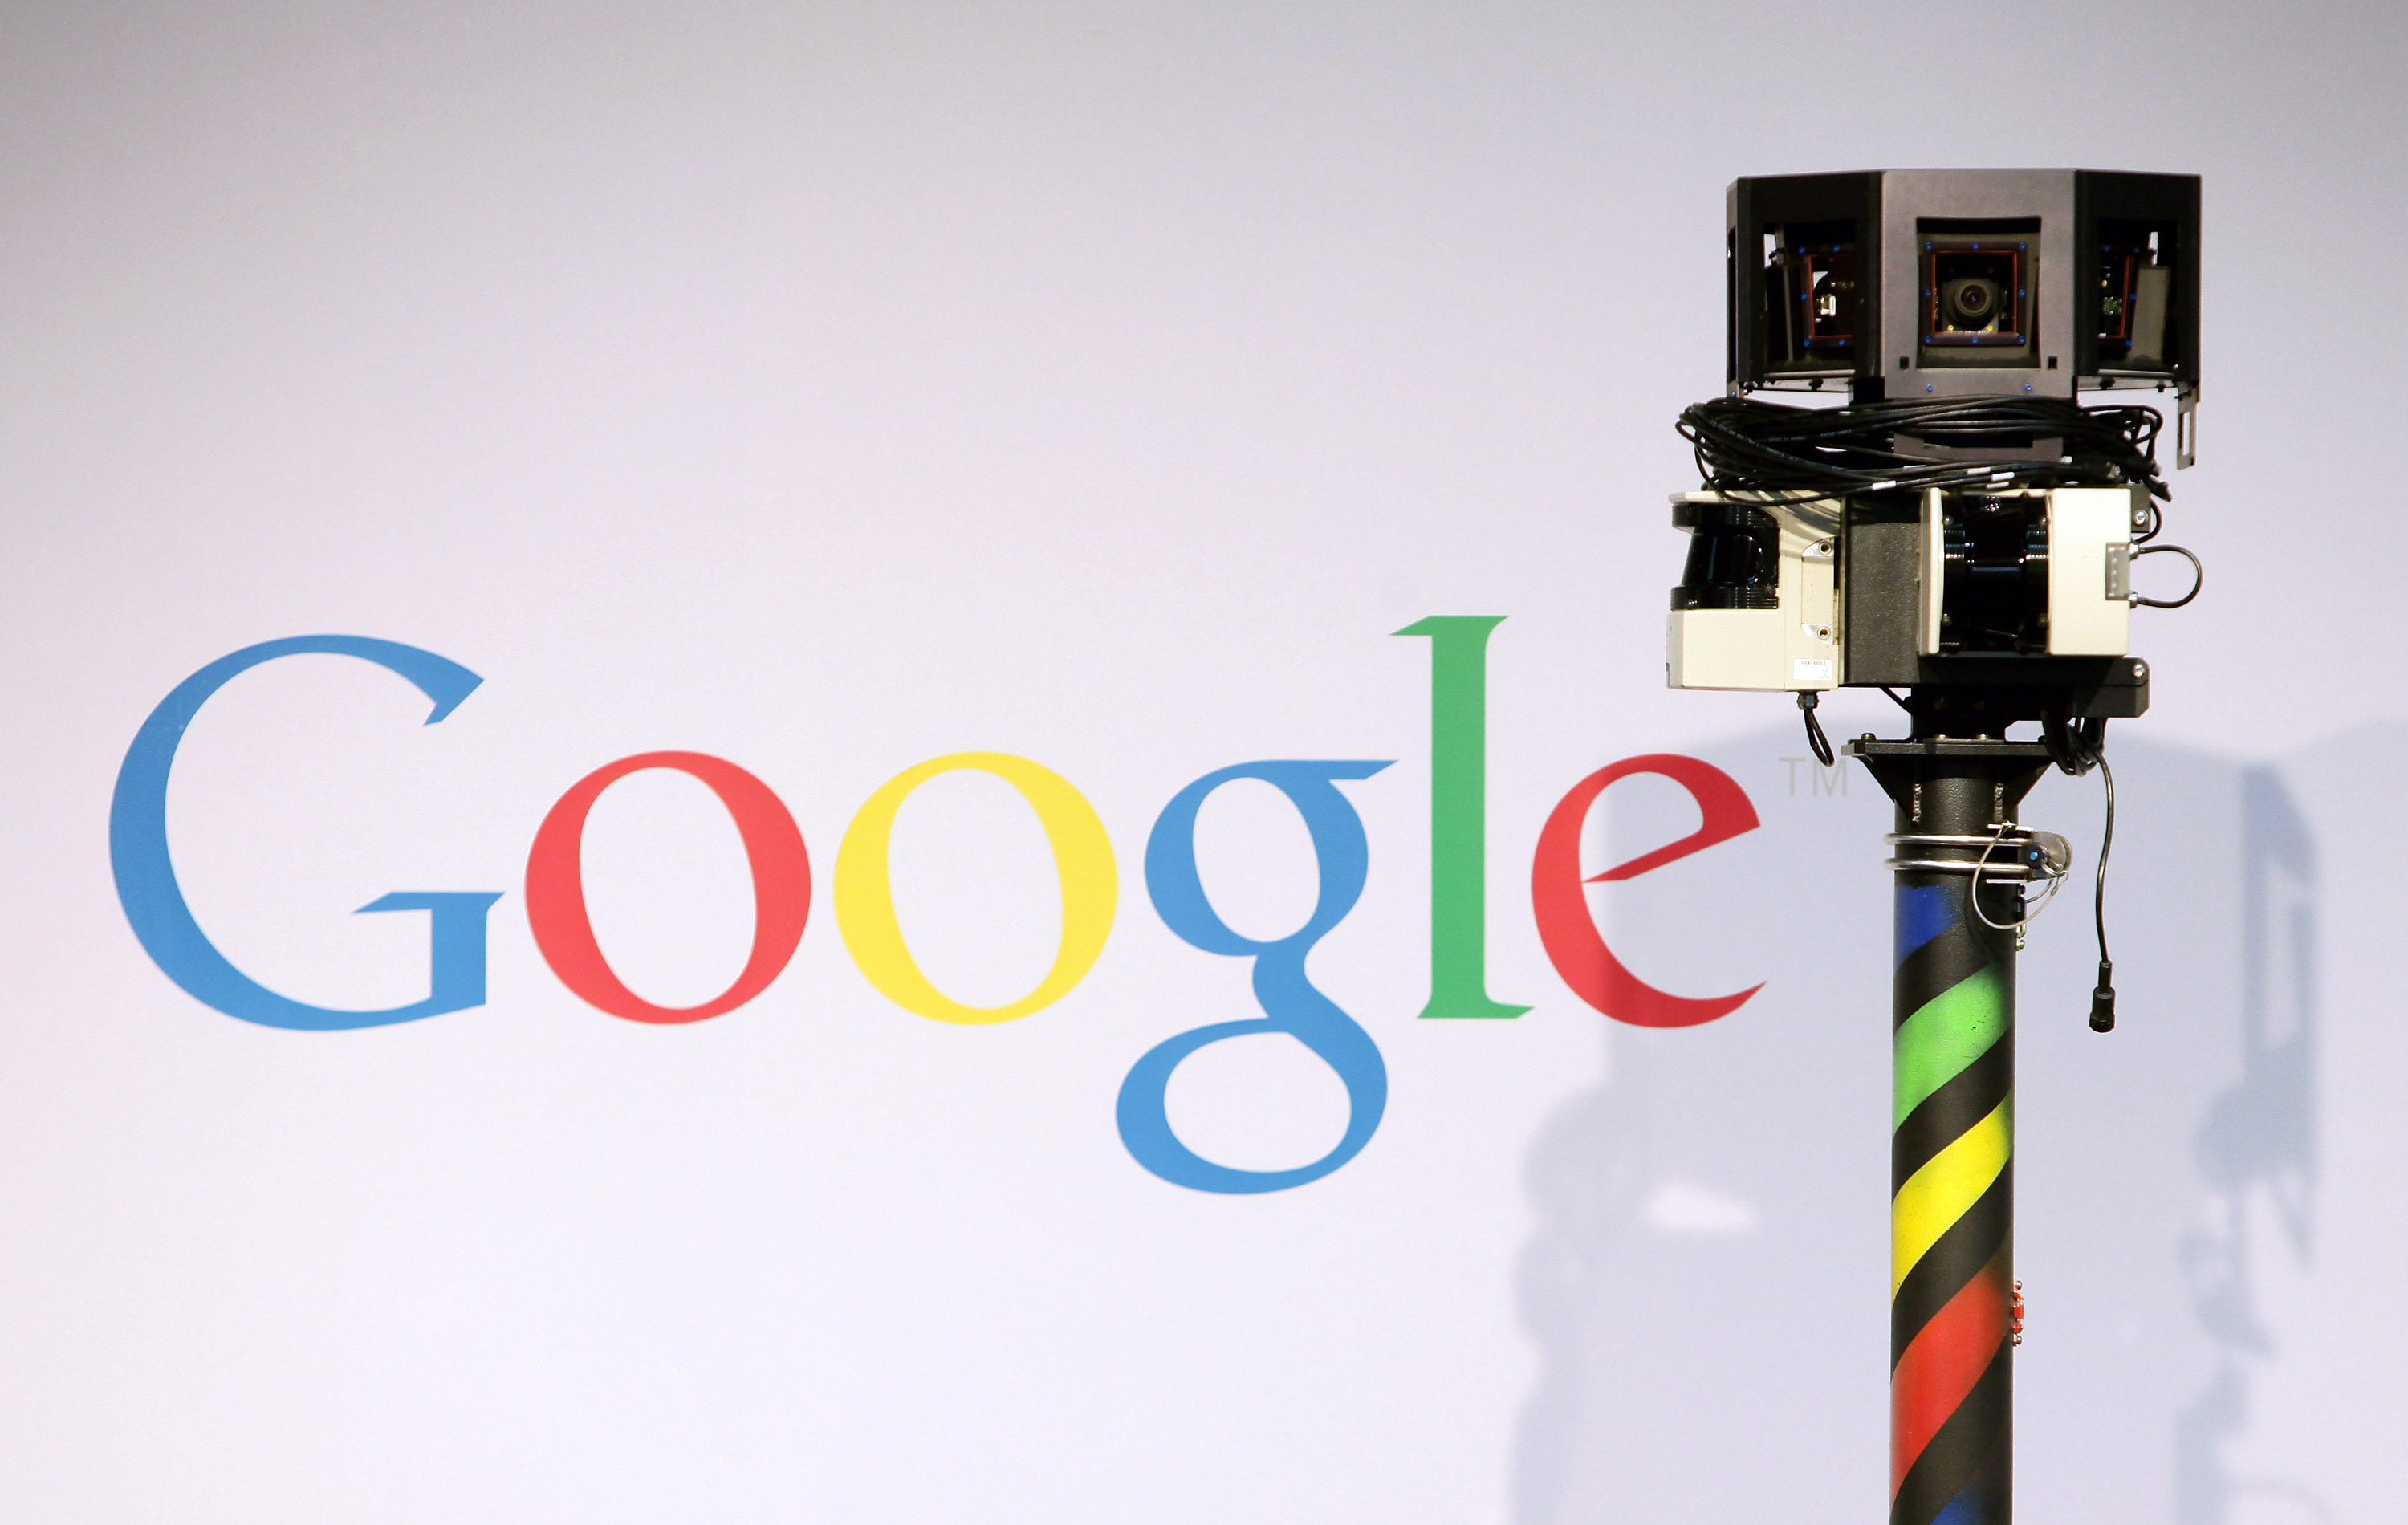 Google Patches 'High Impact' Gmail Account Vulnerability